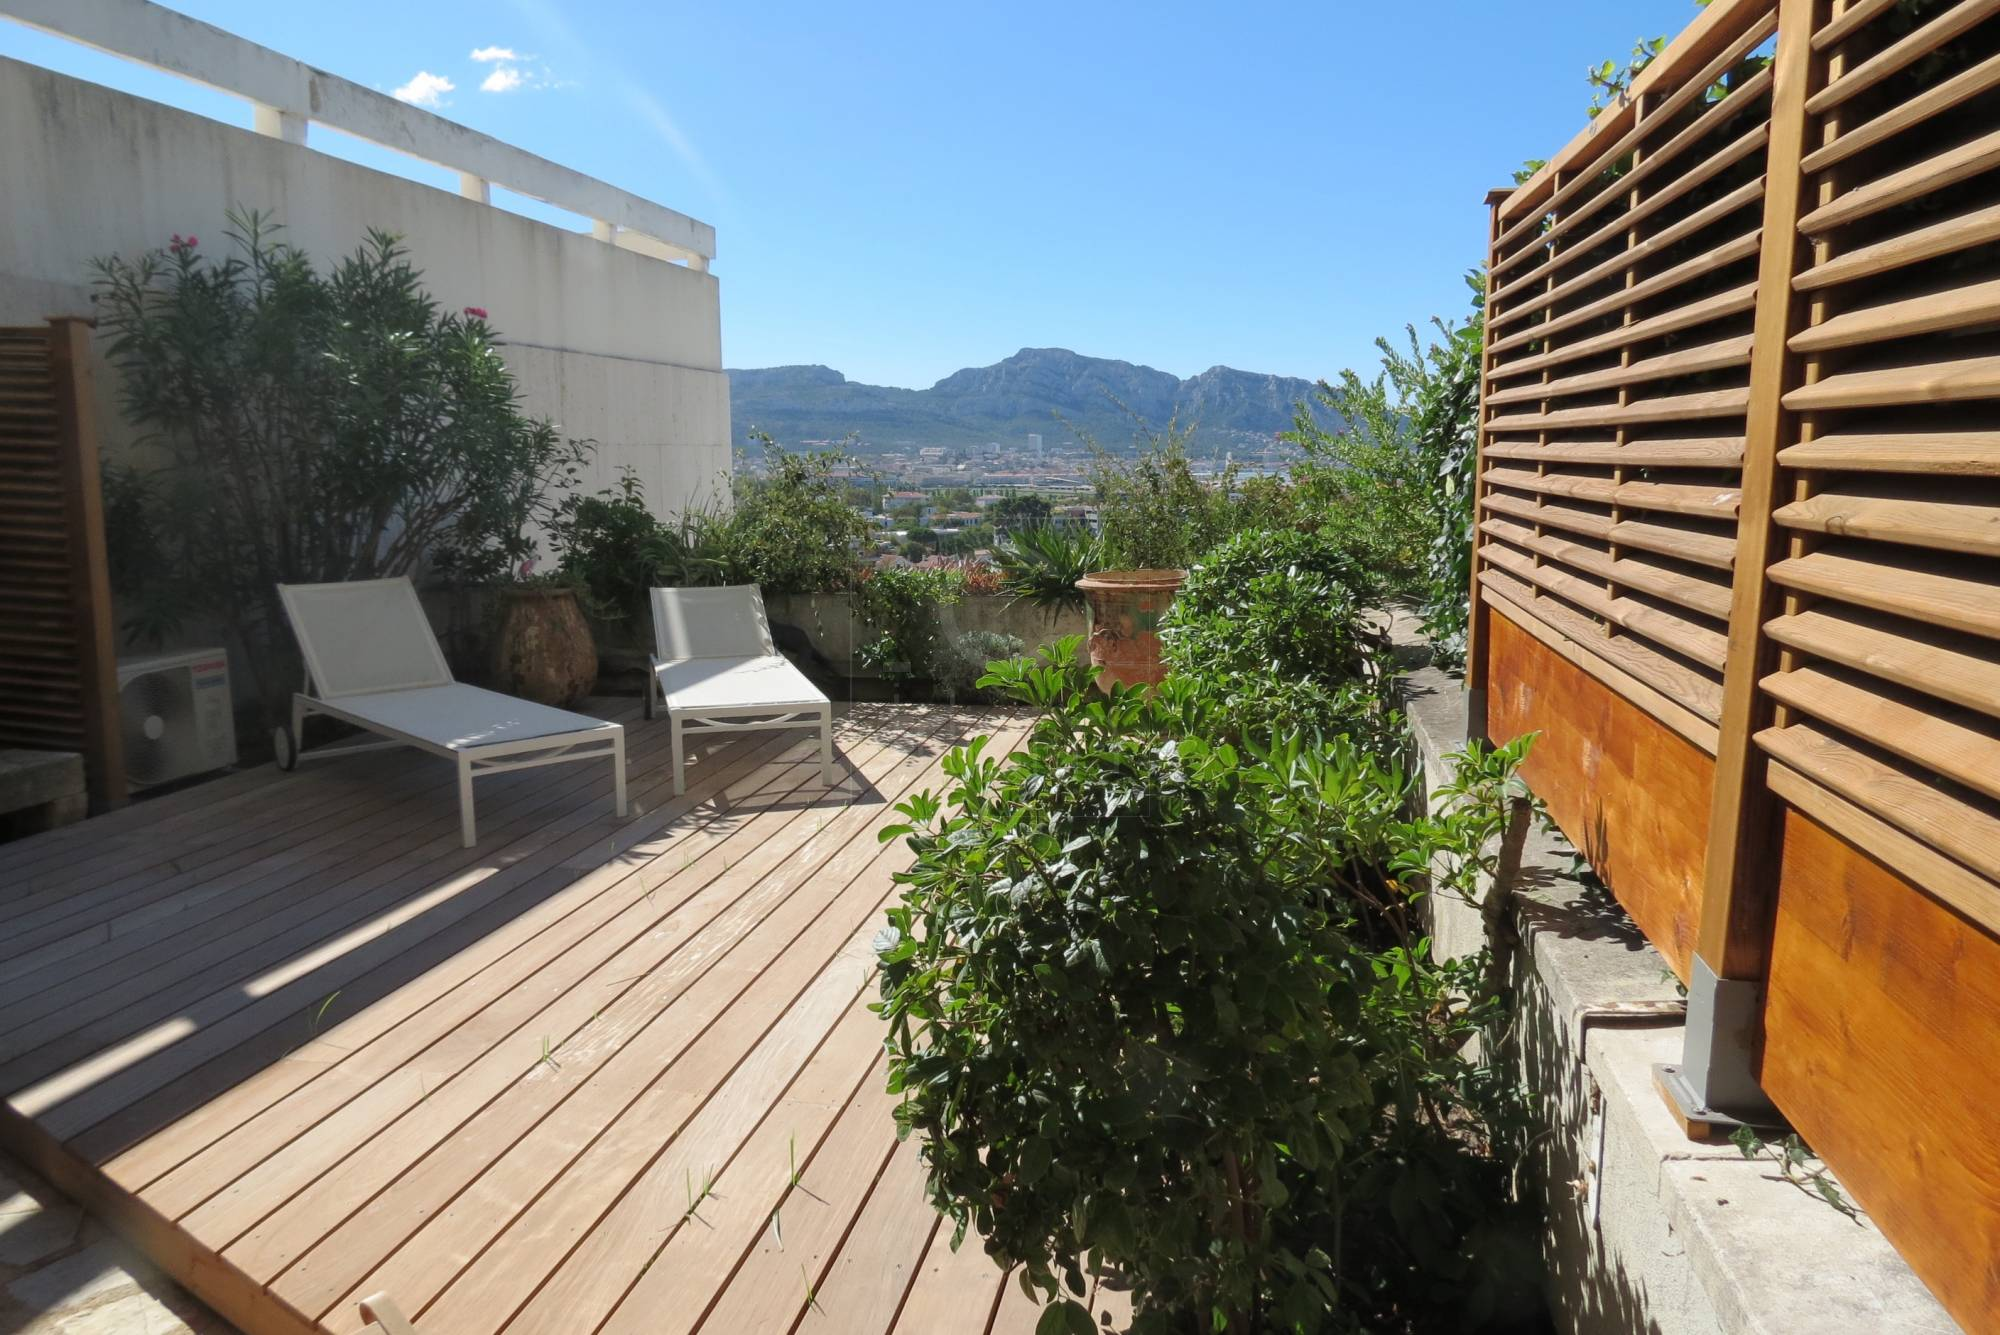 Vente appartement t3 f3 marseille 13008 thalassa cdt for Appartement t4 avec terrasse marseille